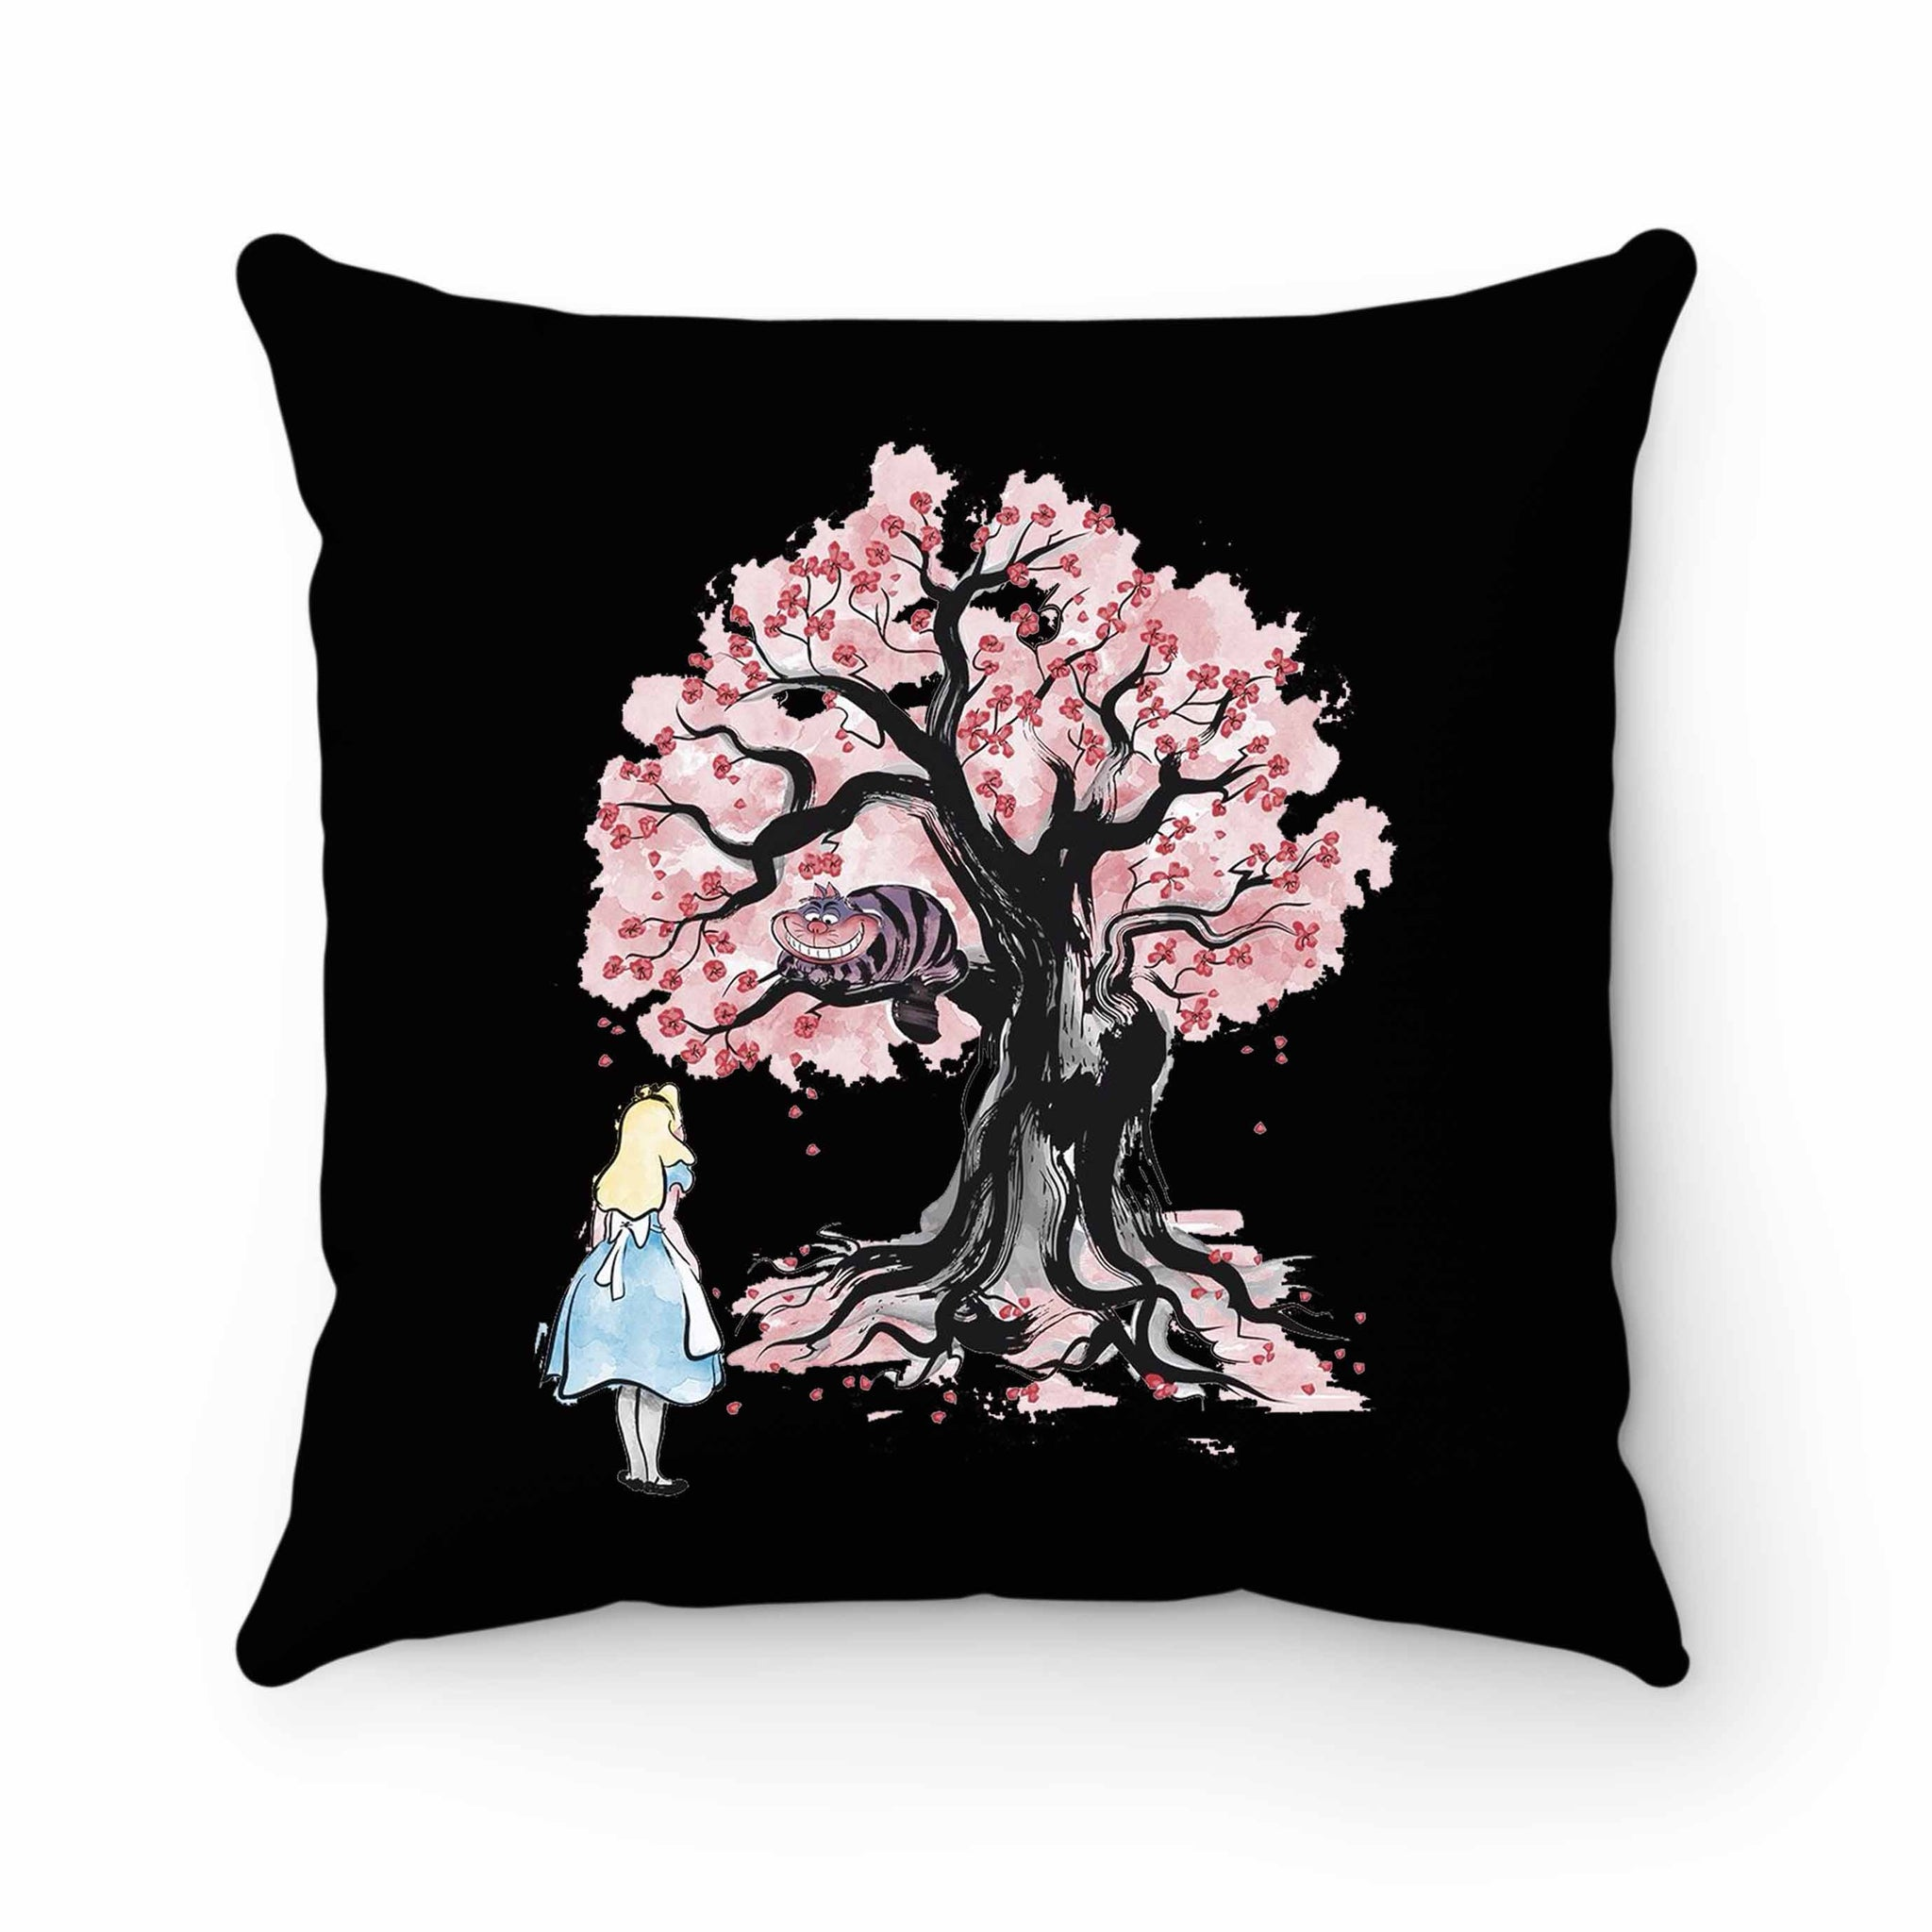 The Chesire's Tree Pillow Case Cover